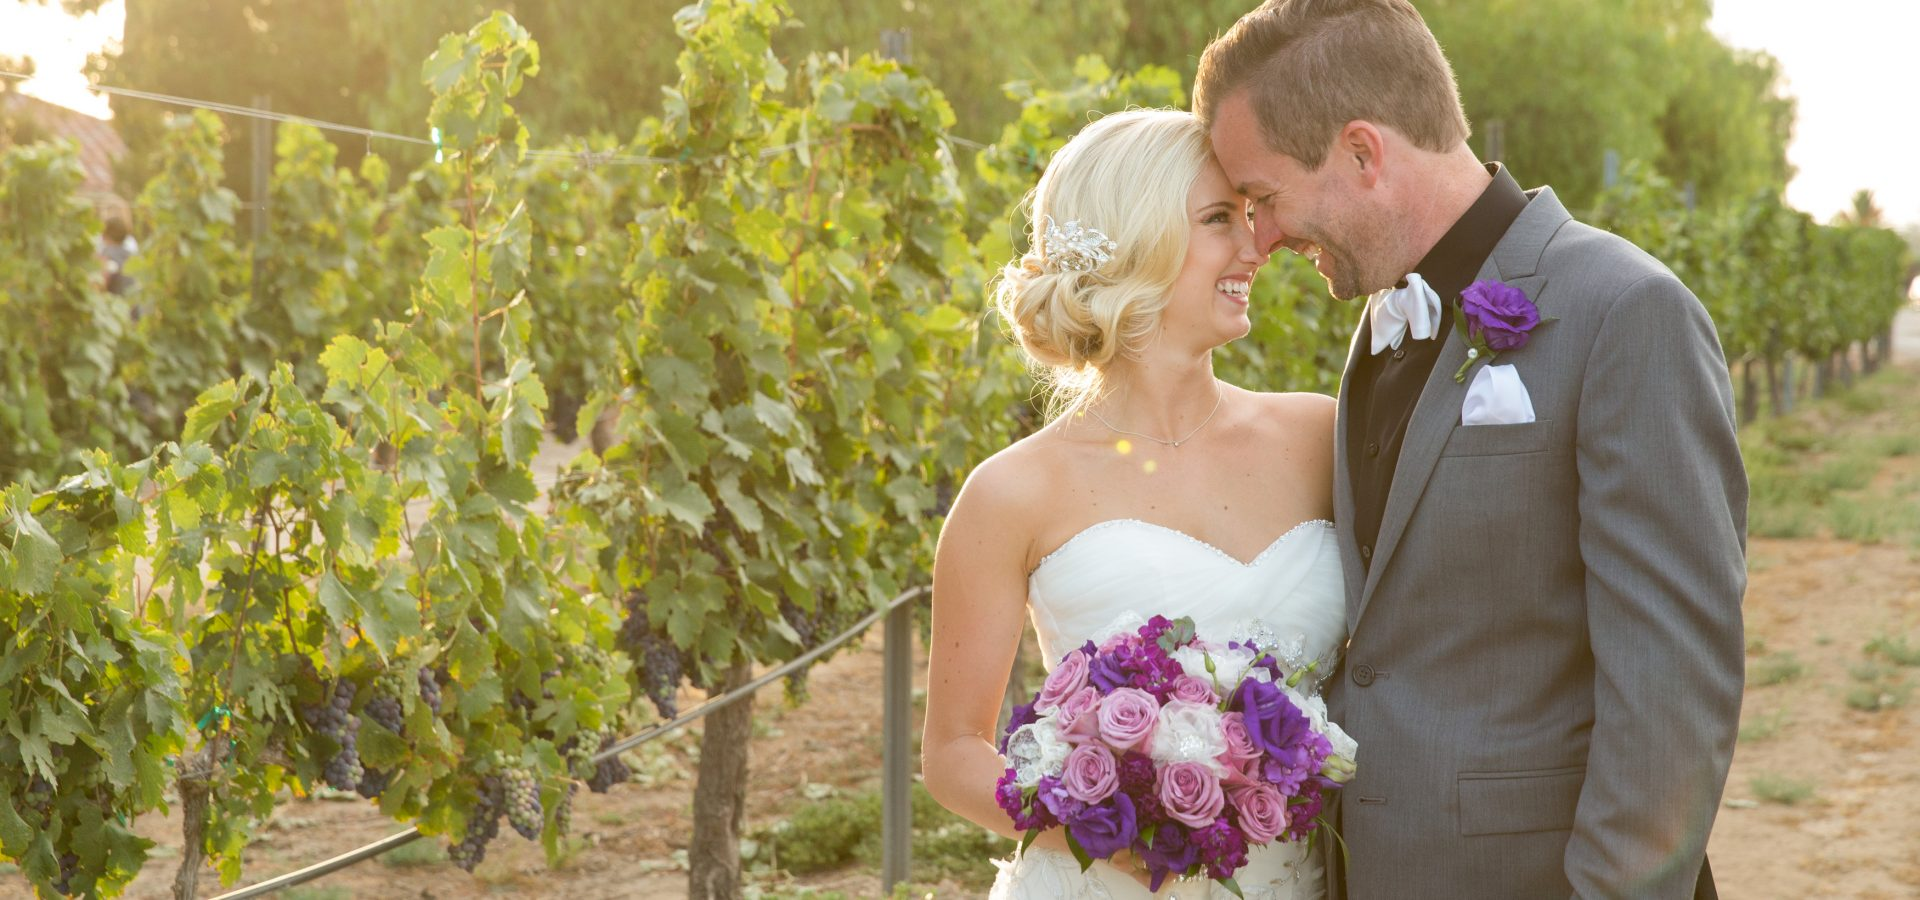 newly weds at South Coast Winery Resort Vineyard